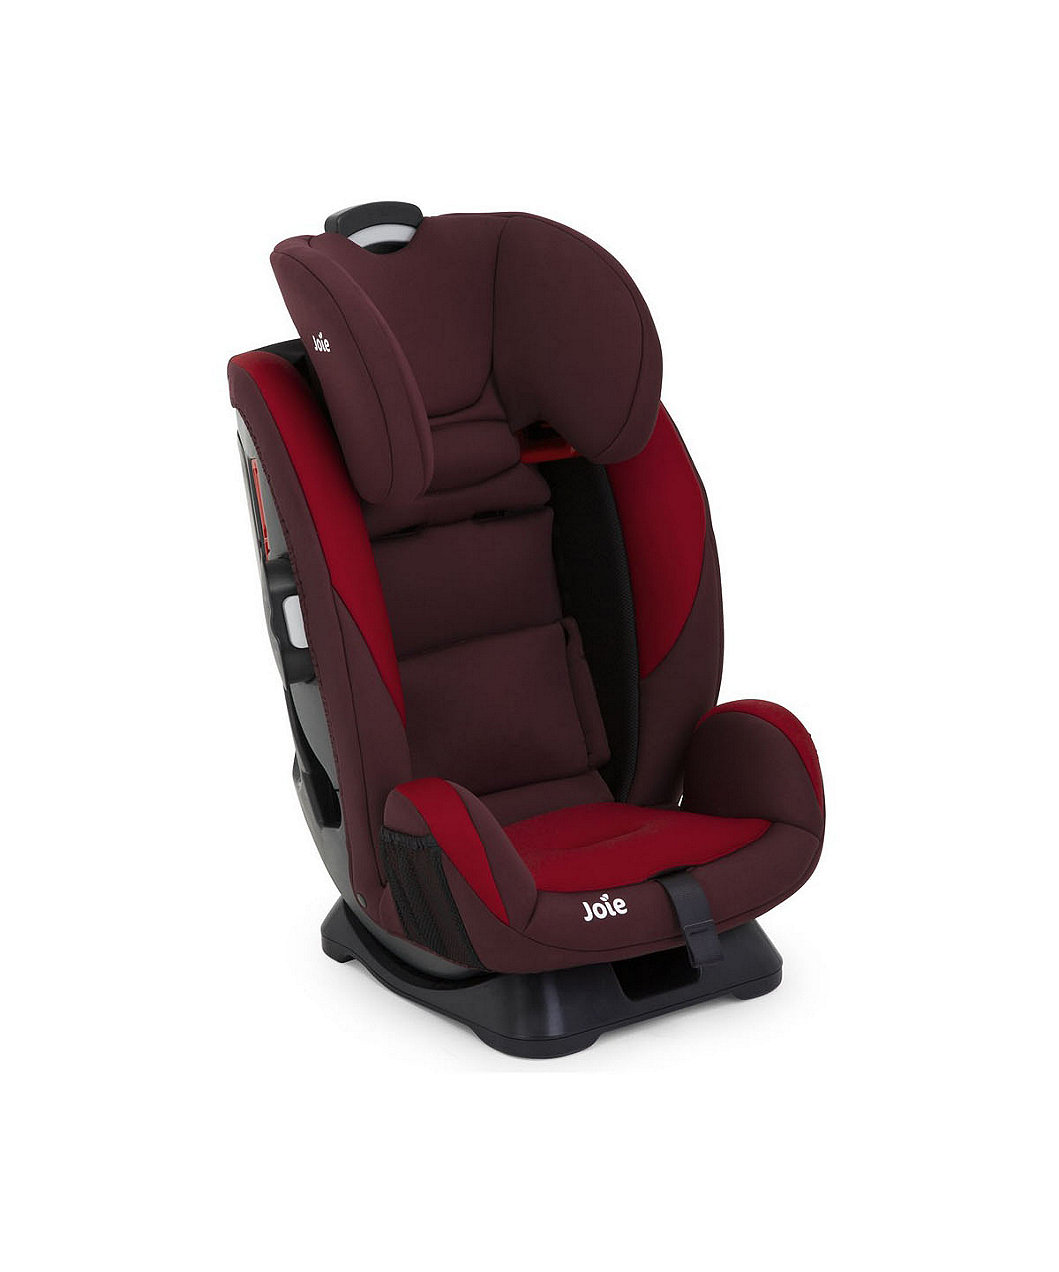 Joie Car Seat Every Stages